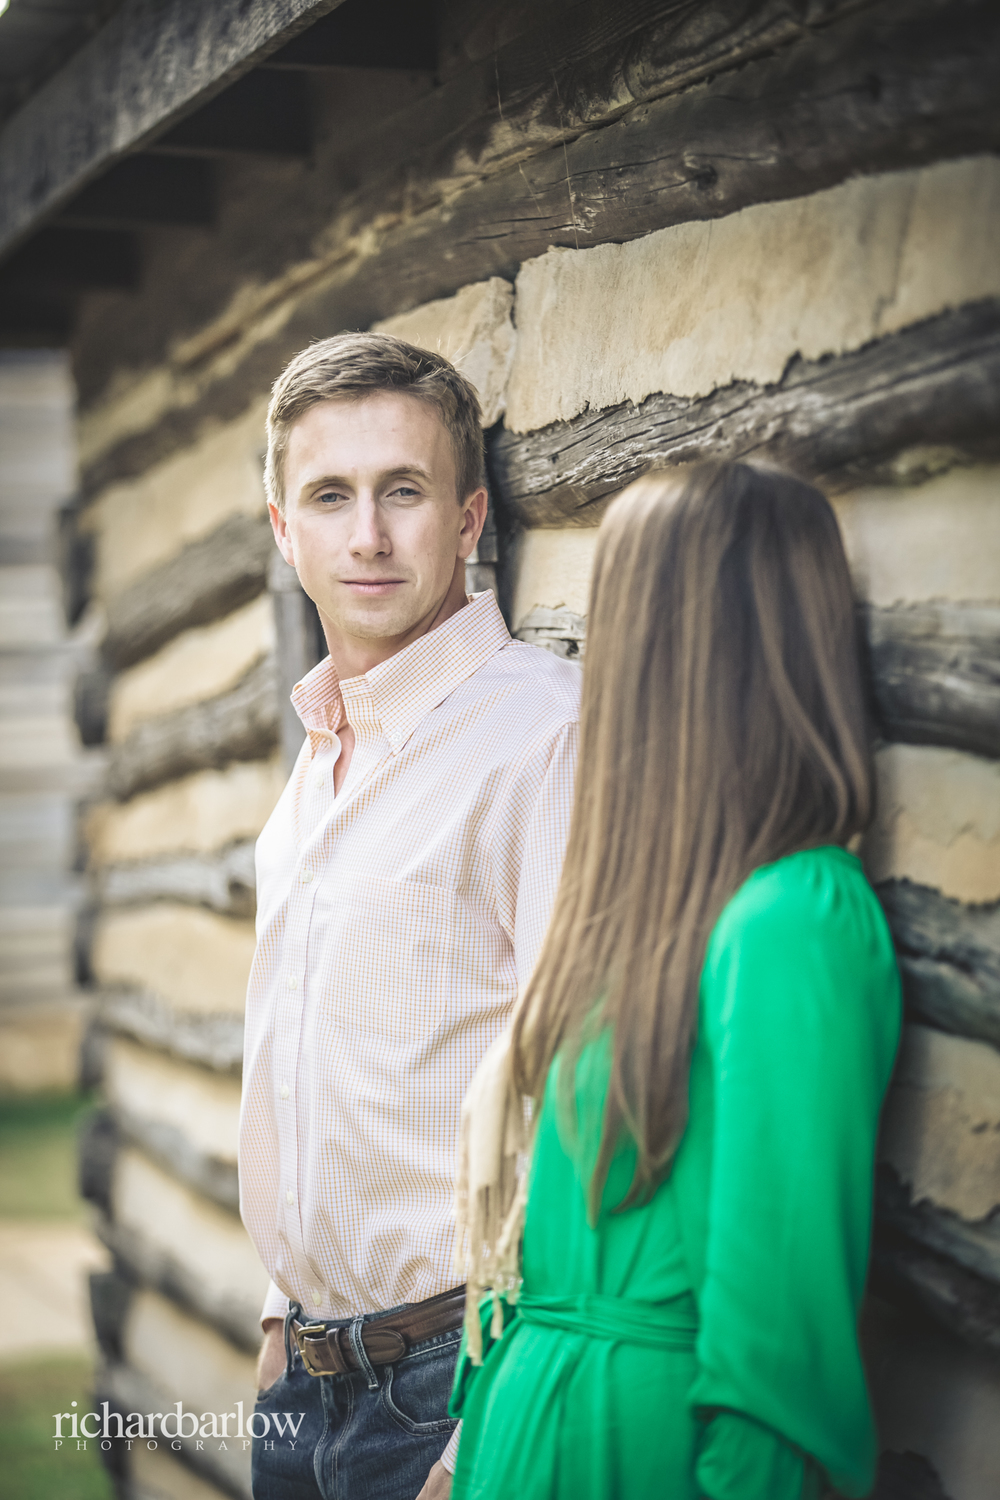 richard barlow photography - Graham and Lauren Engagement Session Wake Forest-10.jpg